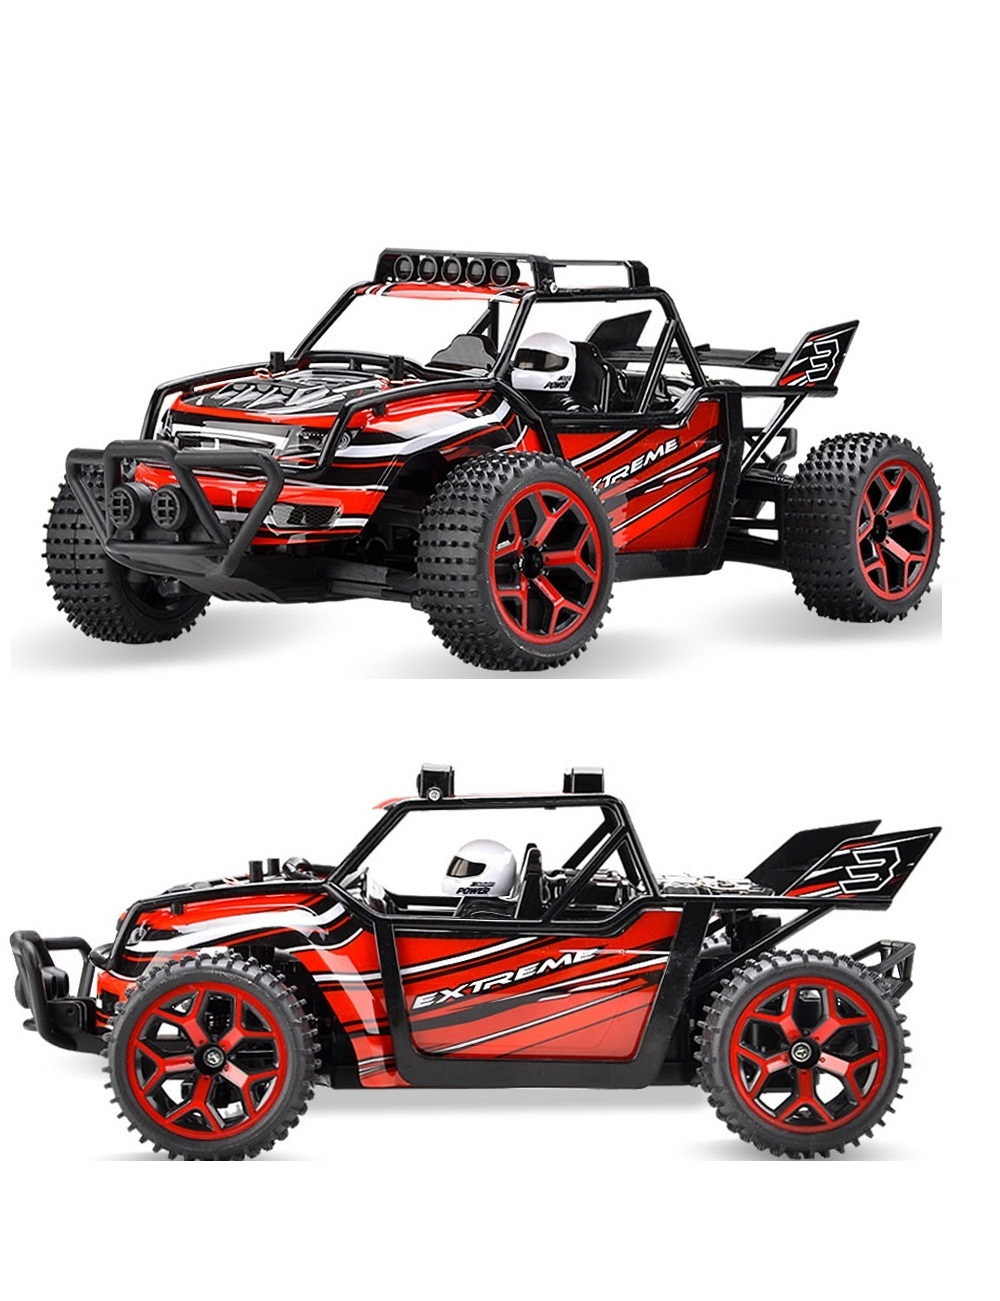 YUKALA 2017 New 1:18 RC Car 4WD Drift Remote Control Car Radio Controlled Machine Highspeed Micro Racing Cars Model Toys jmt rc car 1 18 short truck 4wd drift remote control car radio controlled suspension high speed micro racing cars model toy